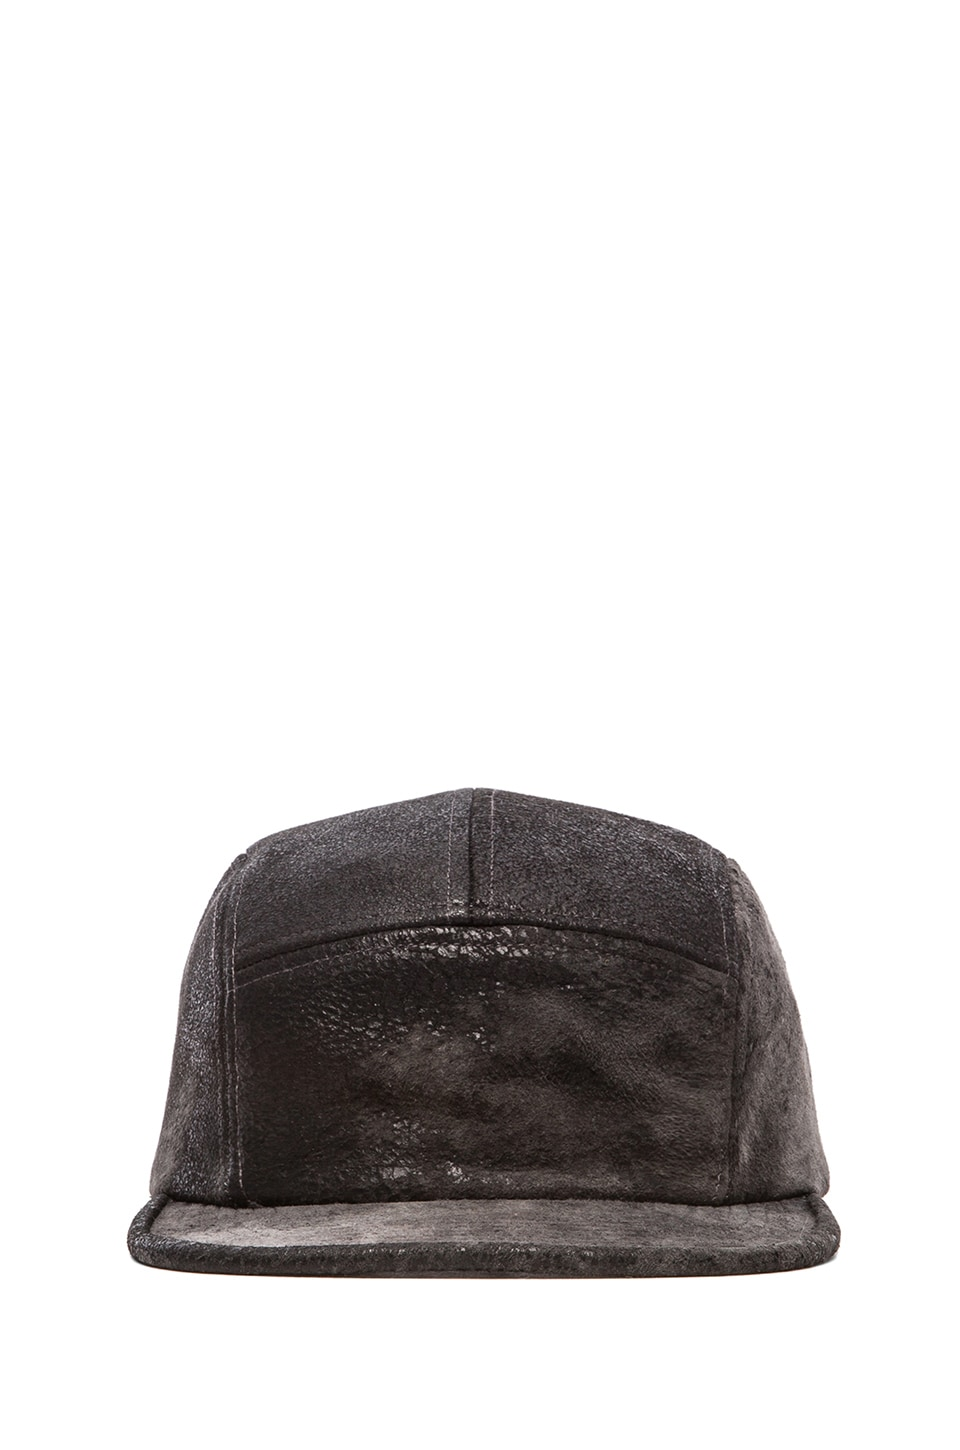 Cast of Vices Leather Hat in Dirty Wash Grey